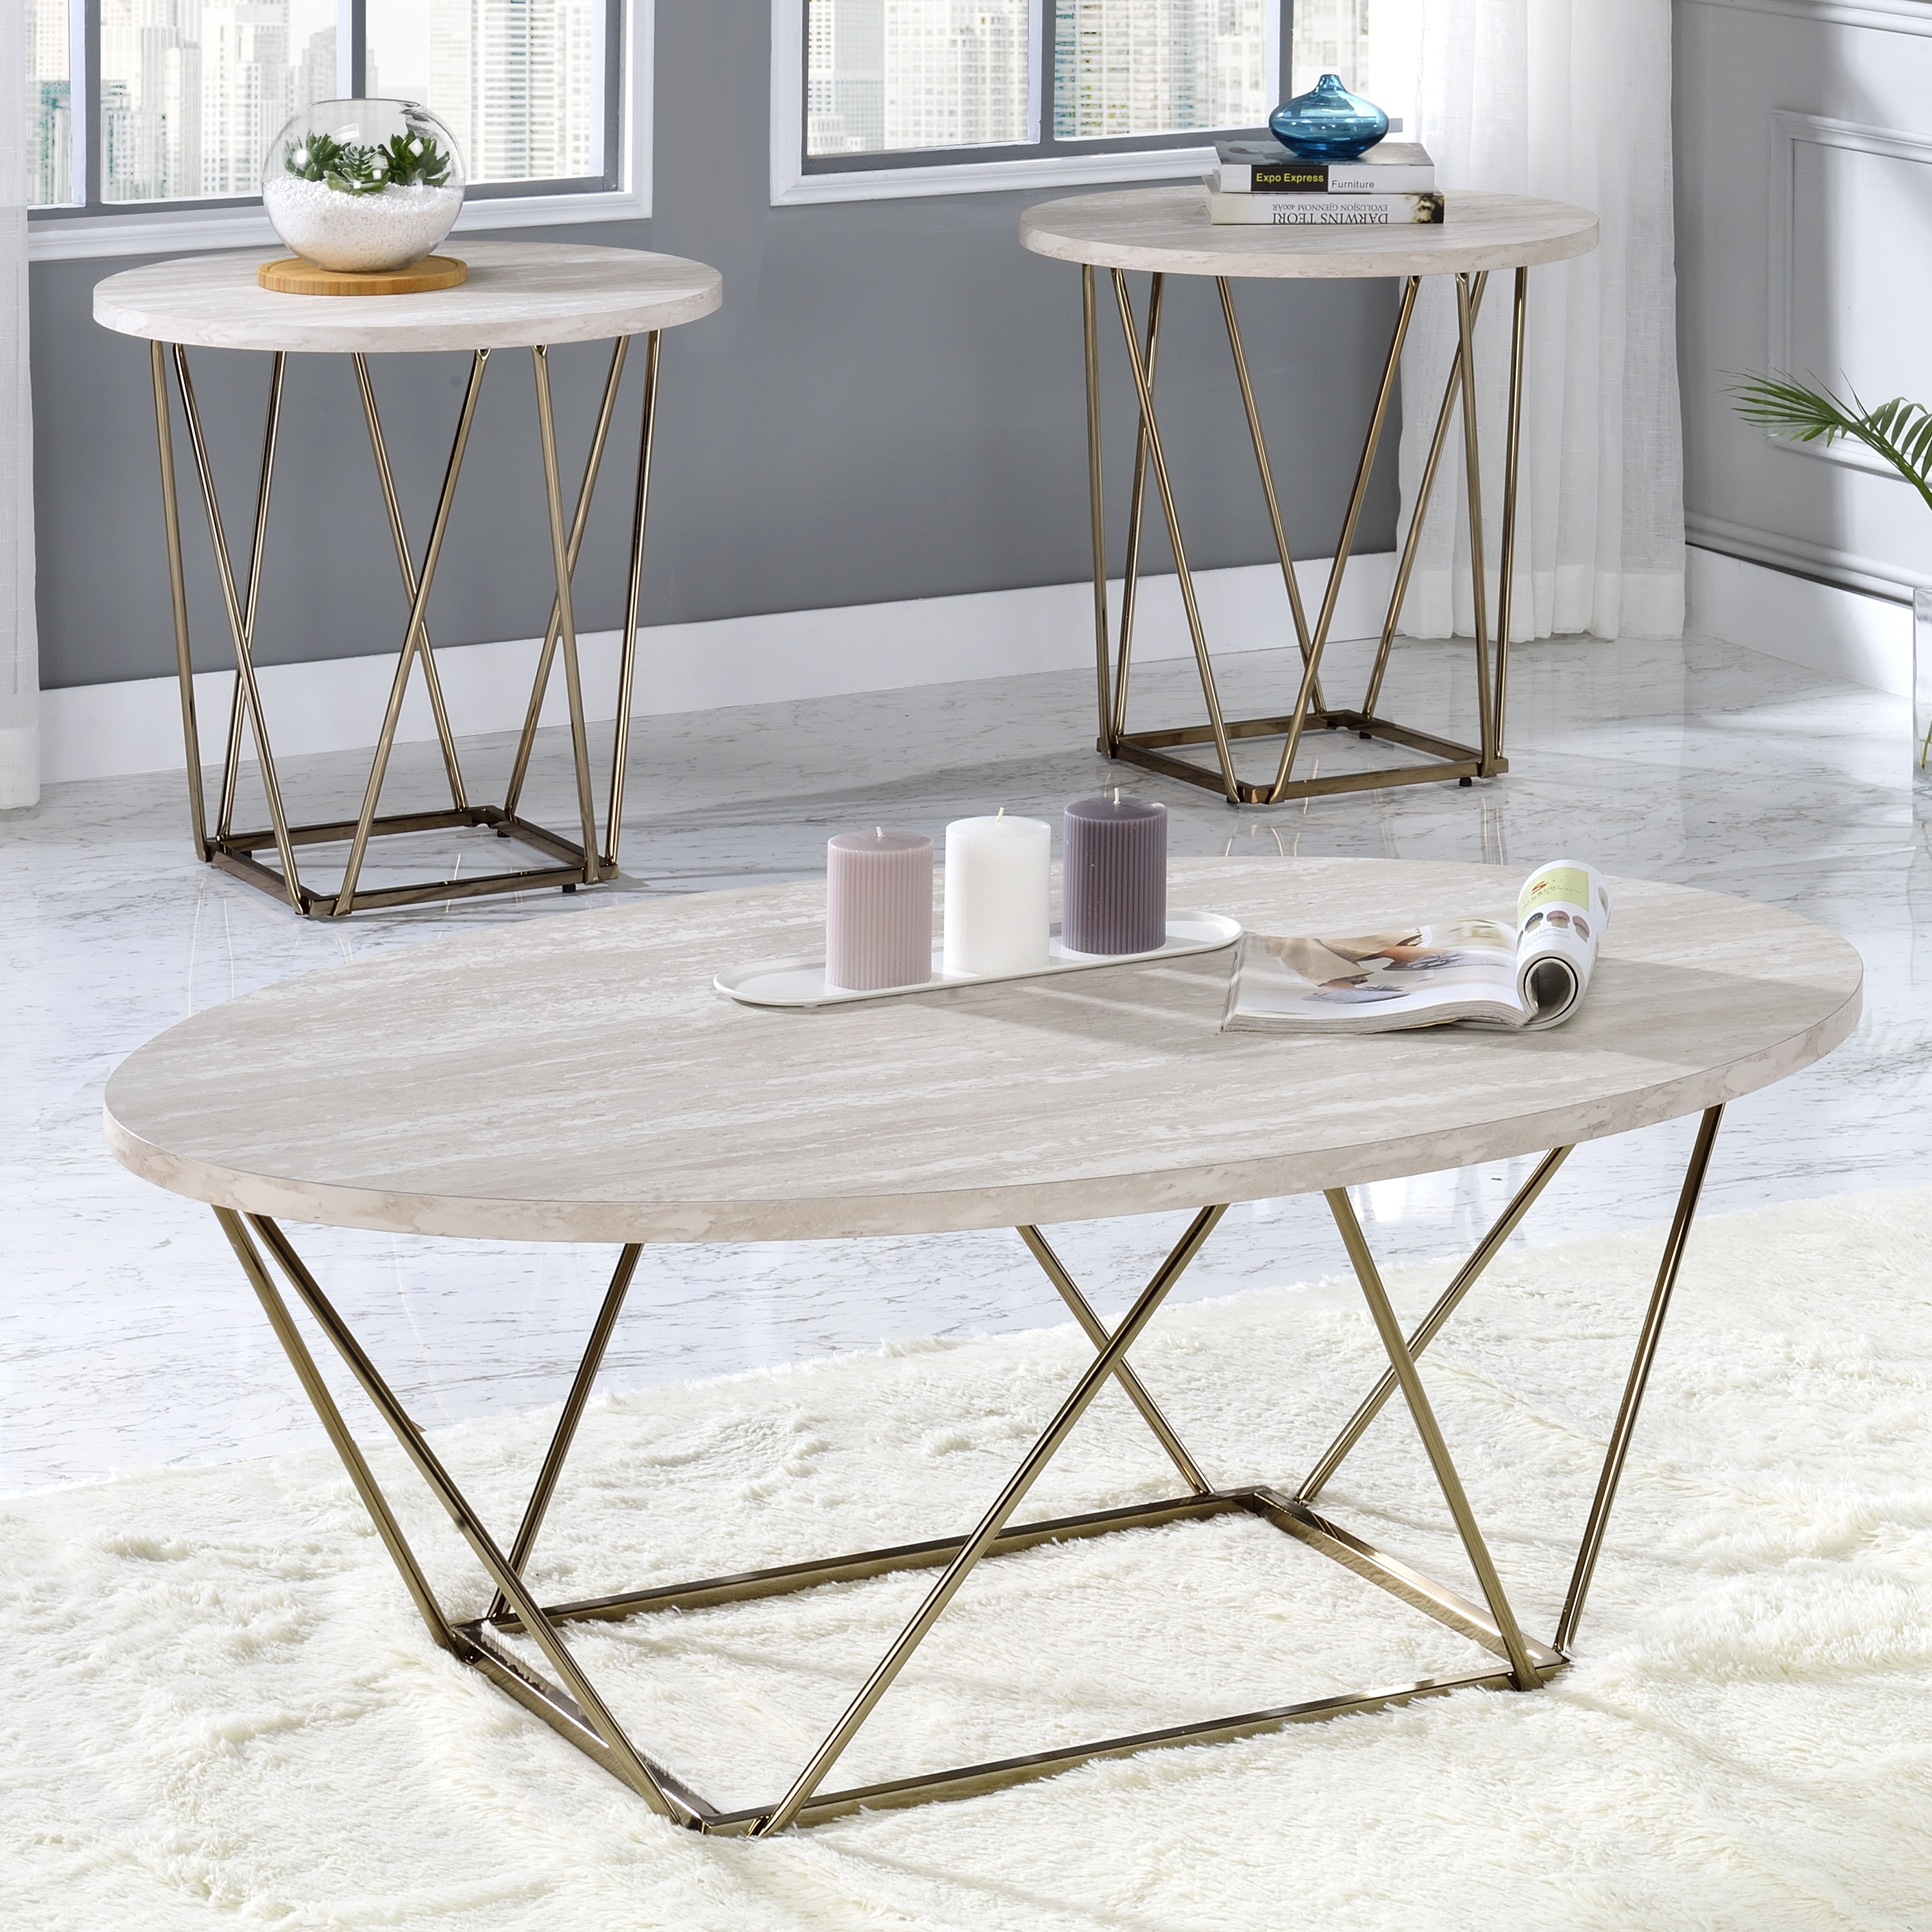 Shop For Silver Orchid Ravine 3 Piece Occasional Table Set Get Free Shipping On Everything At Overstock Your Online Furniture Outlet Store Get 5 In Rewards With Club O 31473636